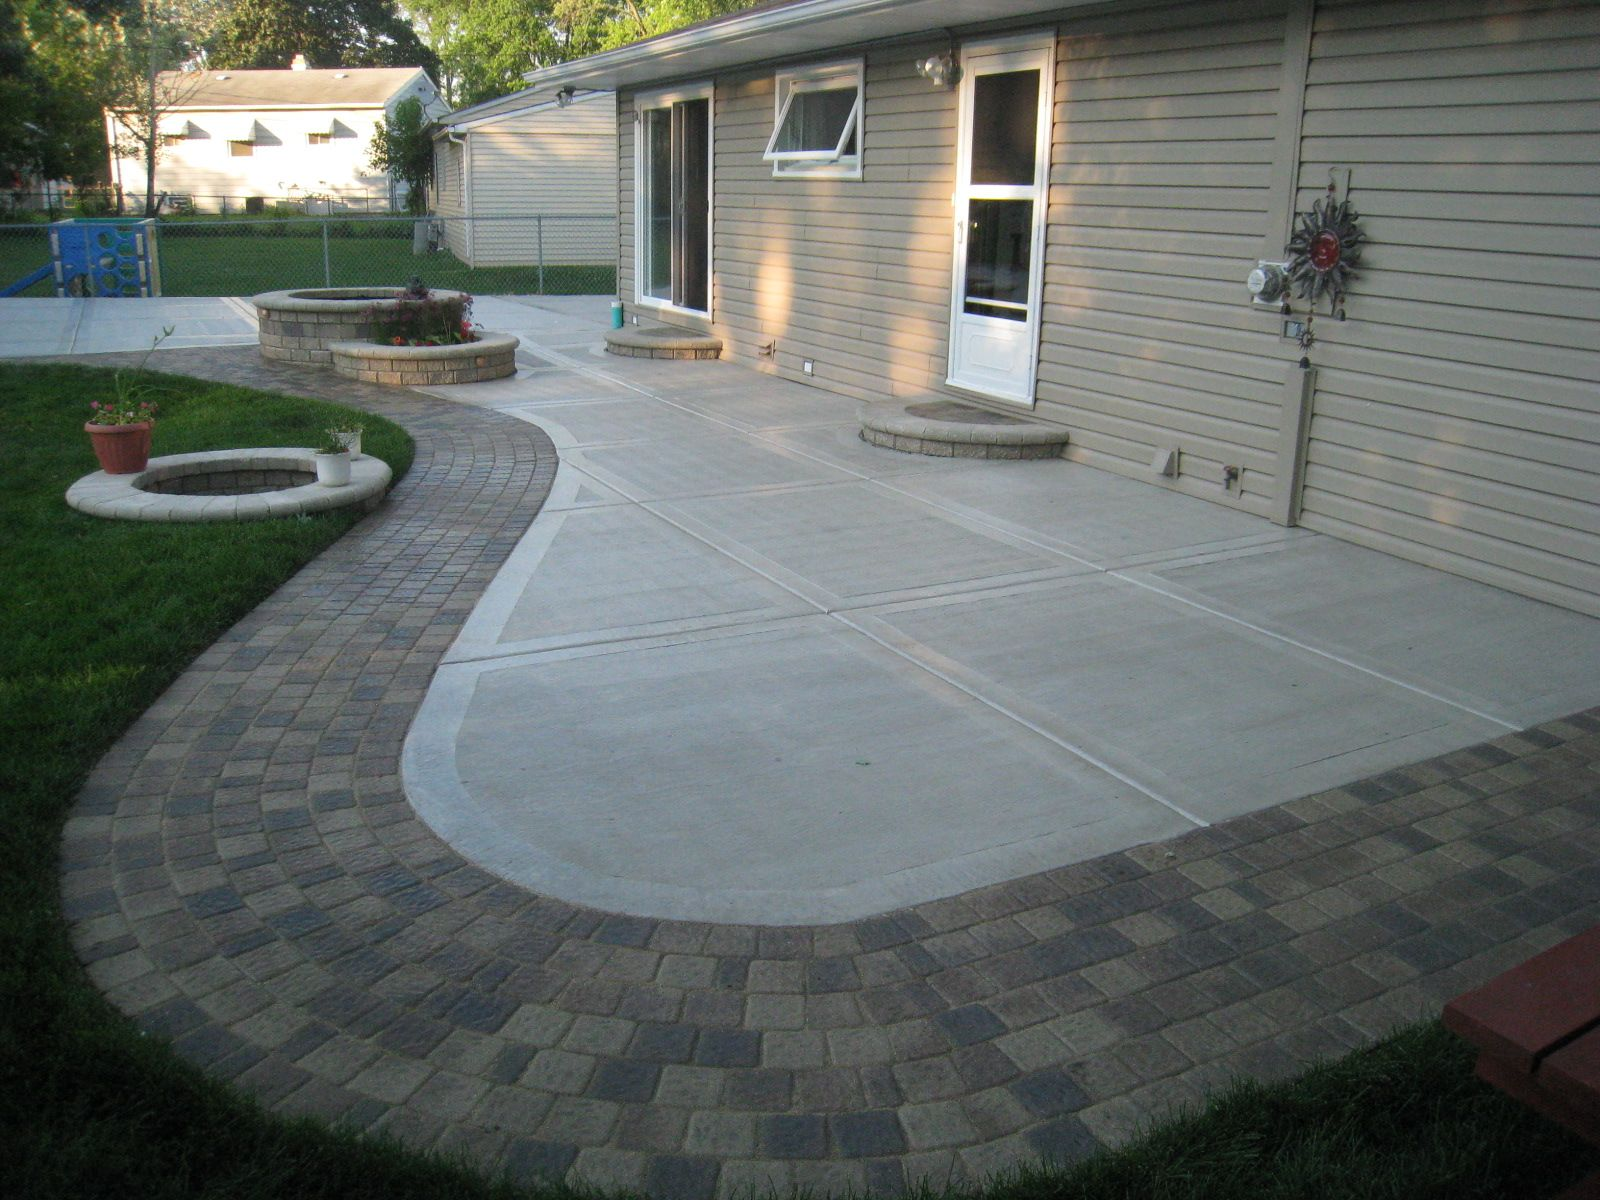 backyard concrete slab ideas | backyard design and backyard ideas